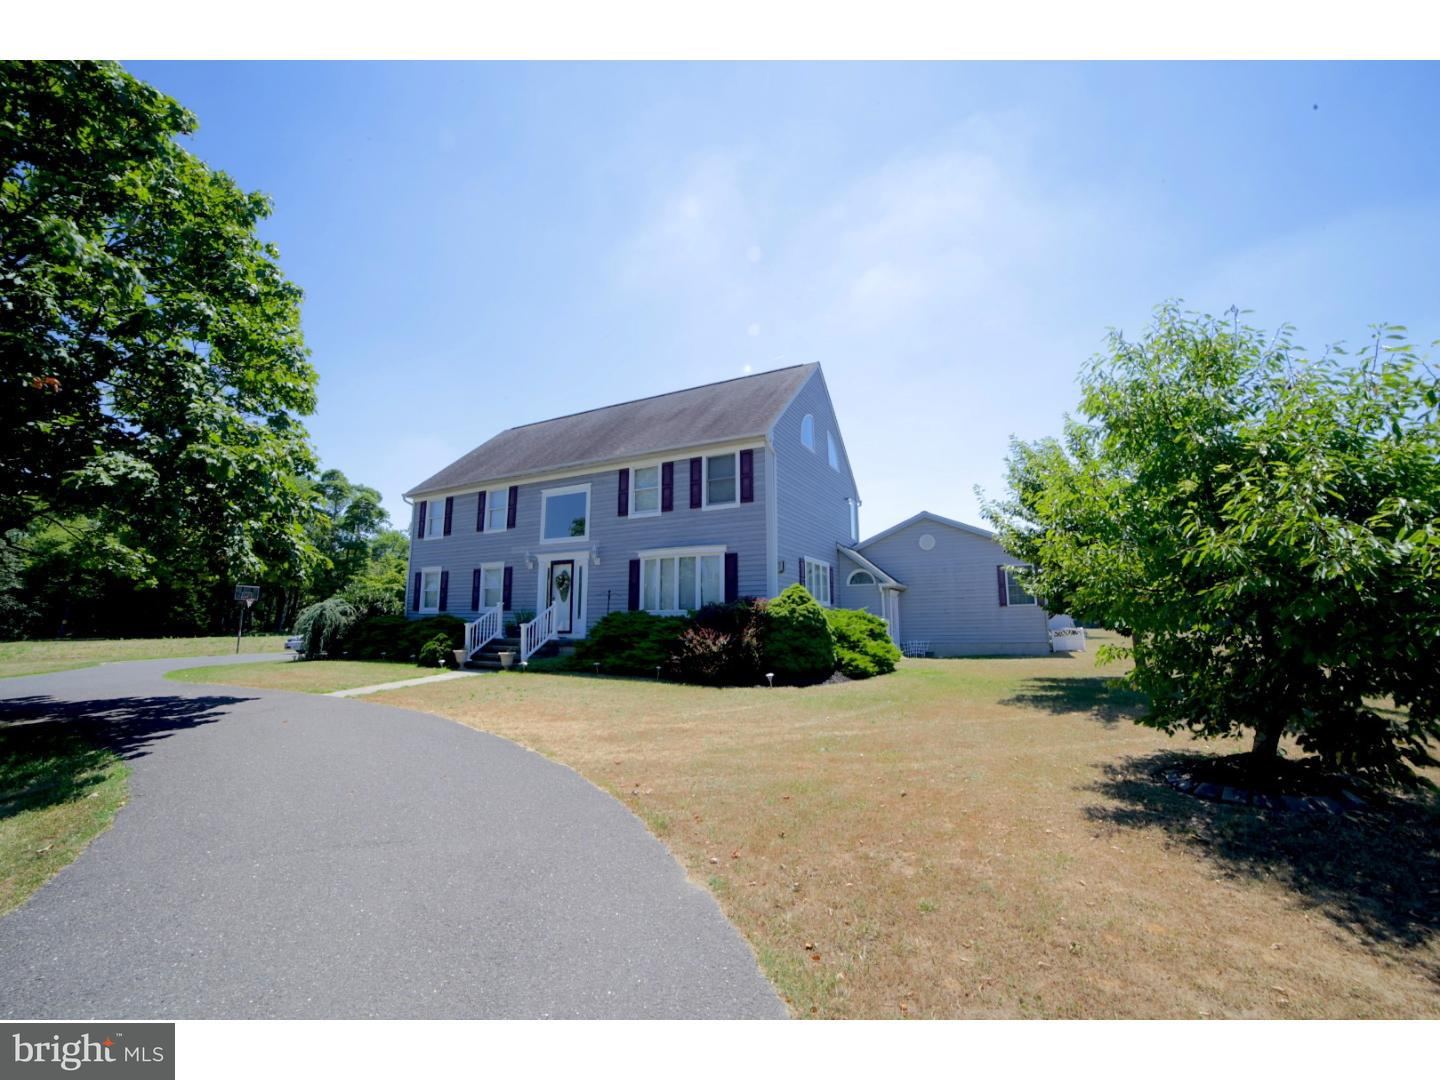 Single Family Home for Sale at 1452 ELLIS MILL Road Monroeville, New Jersey 08343 United States